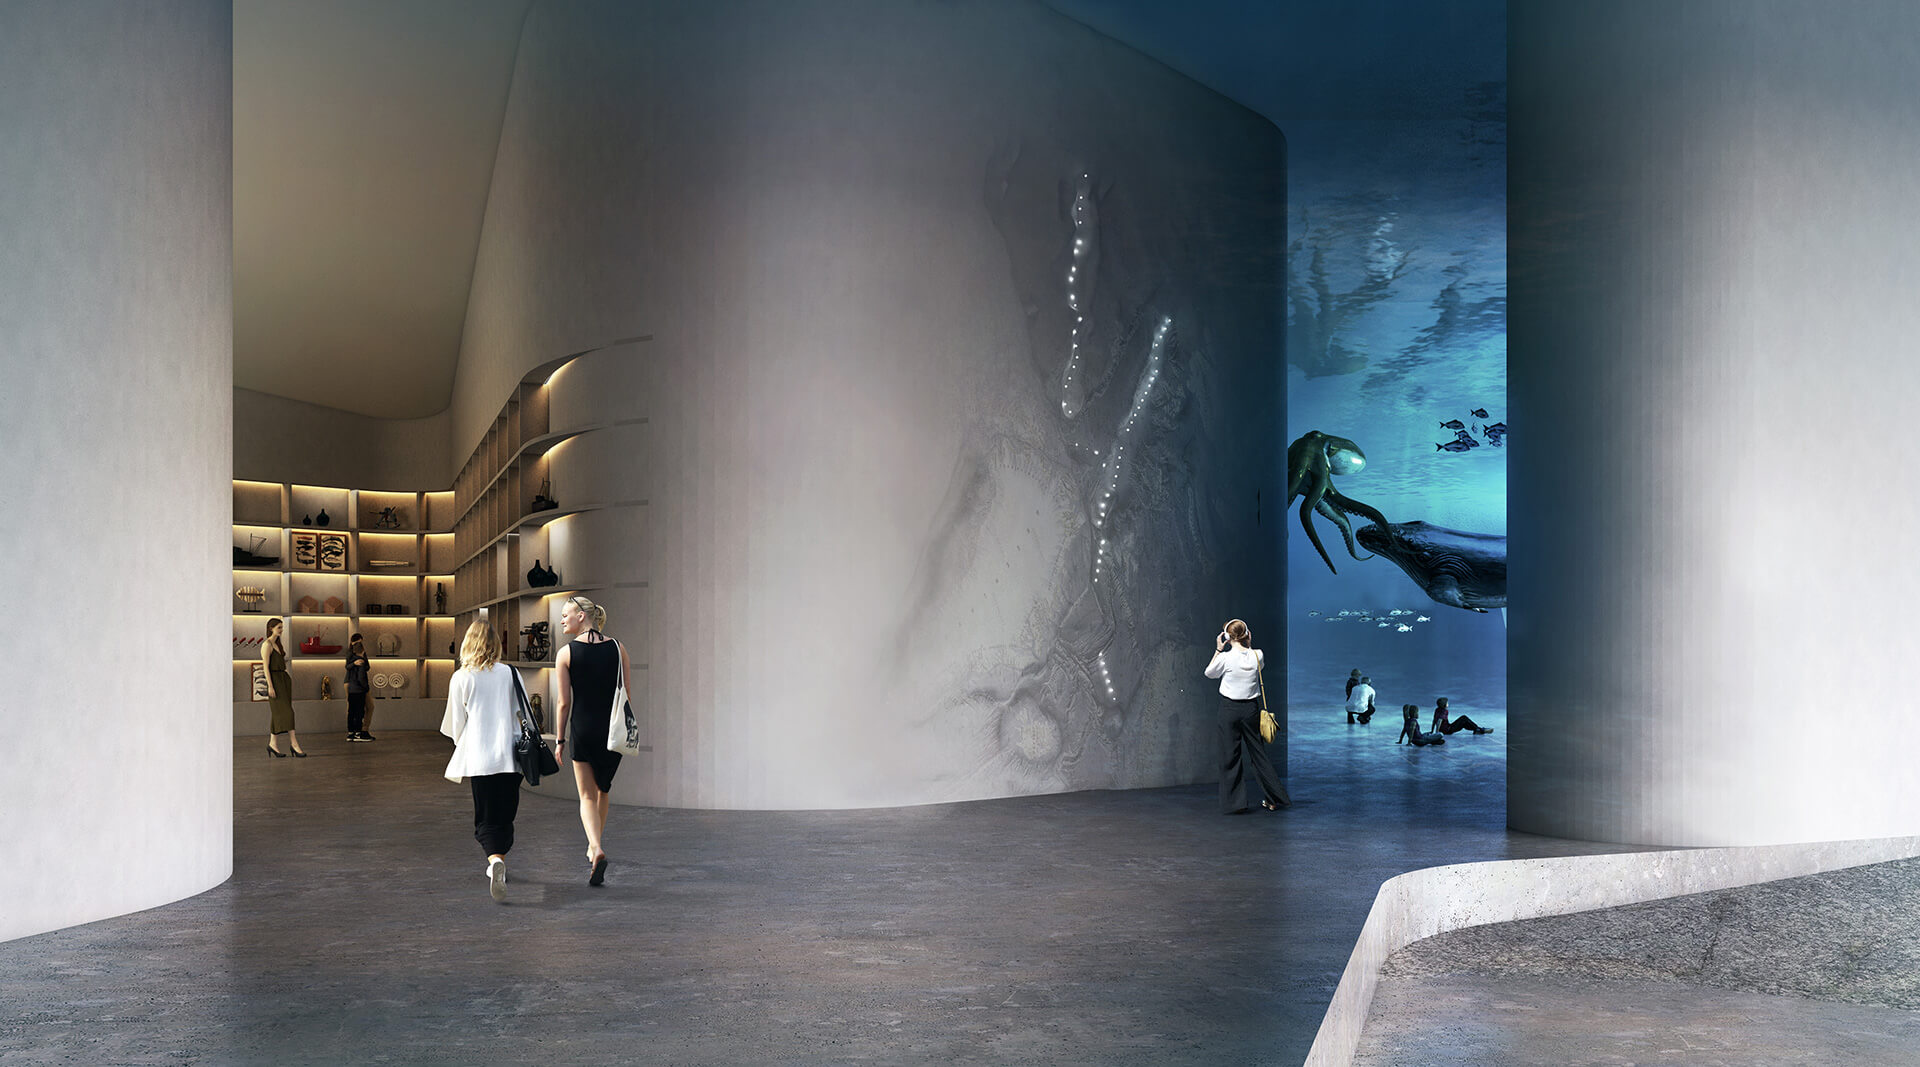 The Whale has a large, column-less interior – the exhibition spaces | The Whale by Denmark based Dorte Mandrup | STIRworld